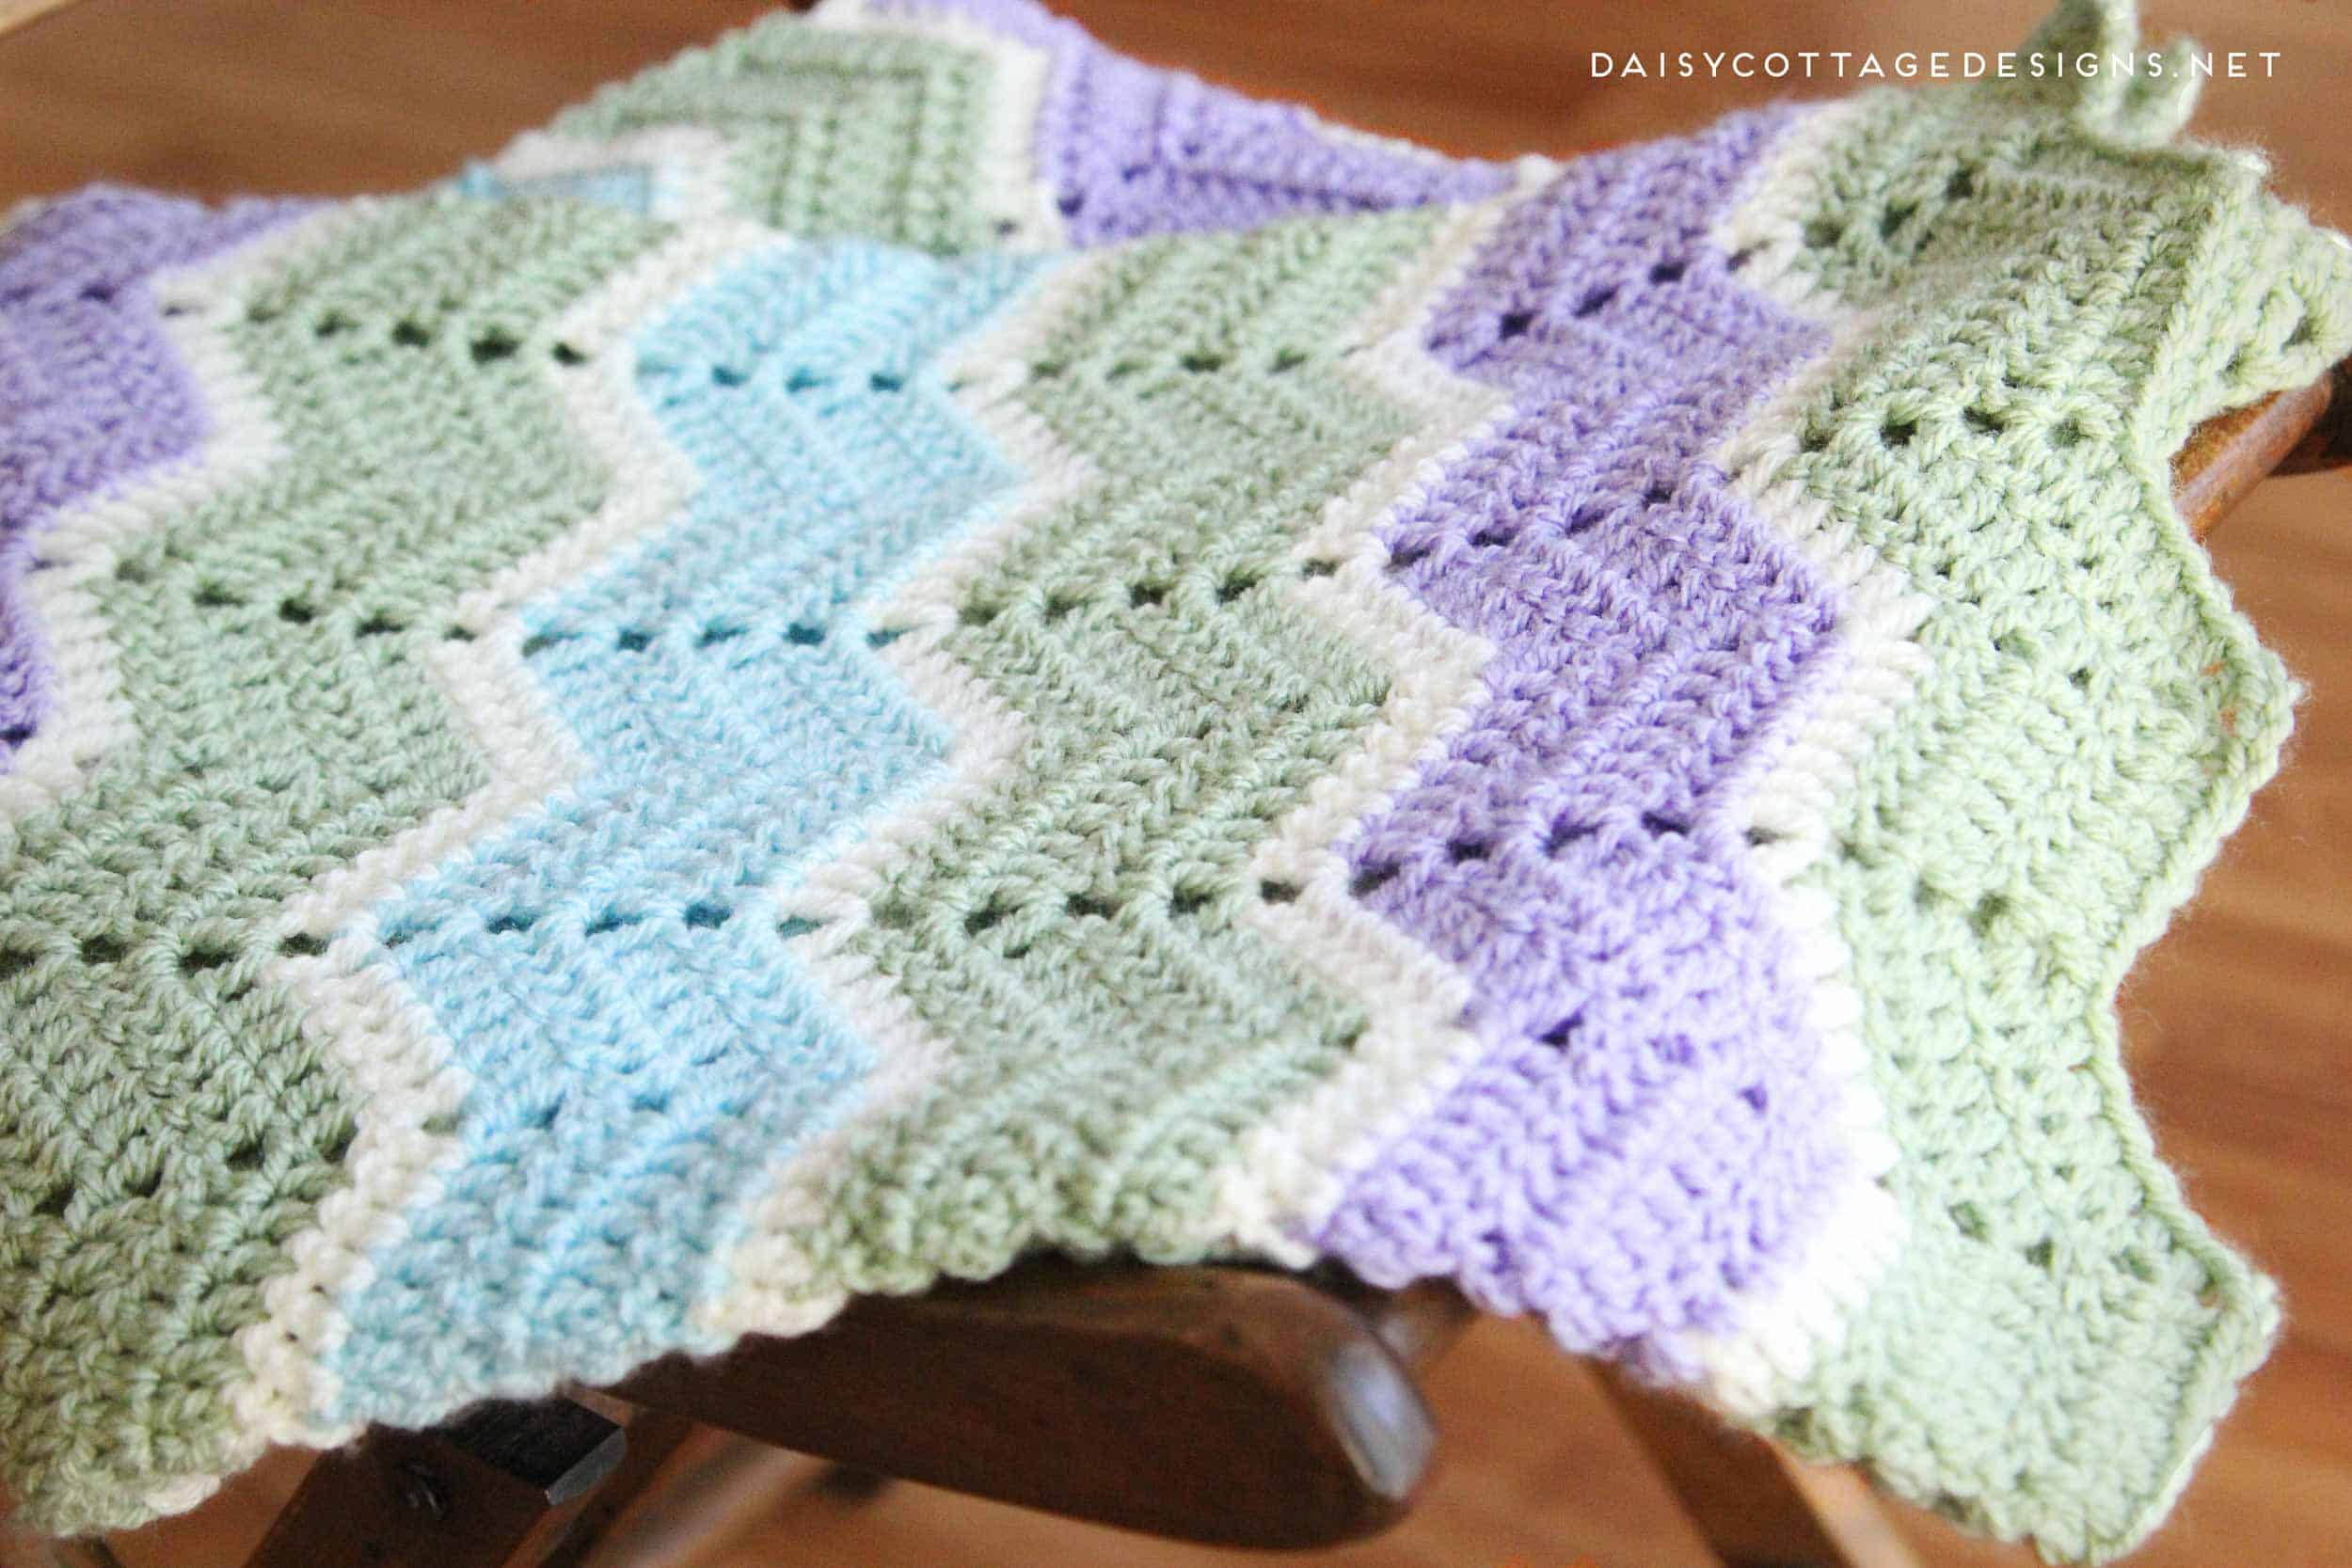 Easy chevron blanket crochet pattern daisy cottage designs use this chevron blanket crochet pattern from daisy cottage designs to create beautiful baby blankets and dt1010fo